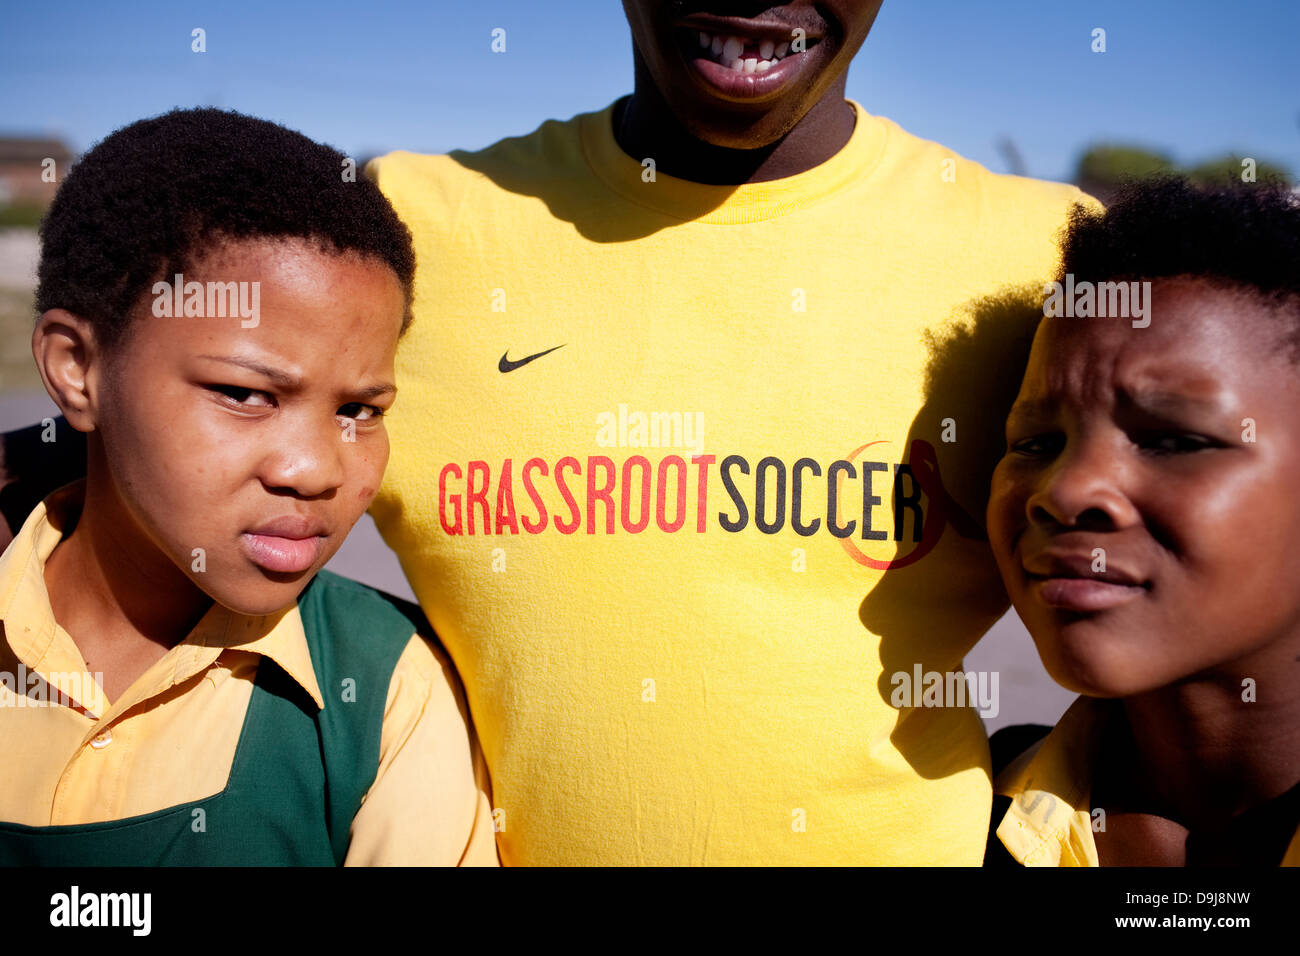 Grassroot Soccer uses power soccer to educate inspire mobilize communities to stop spread HIV Portrait Likhona Andile - Stock Image